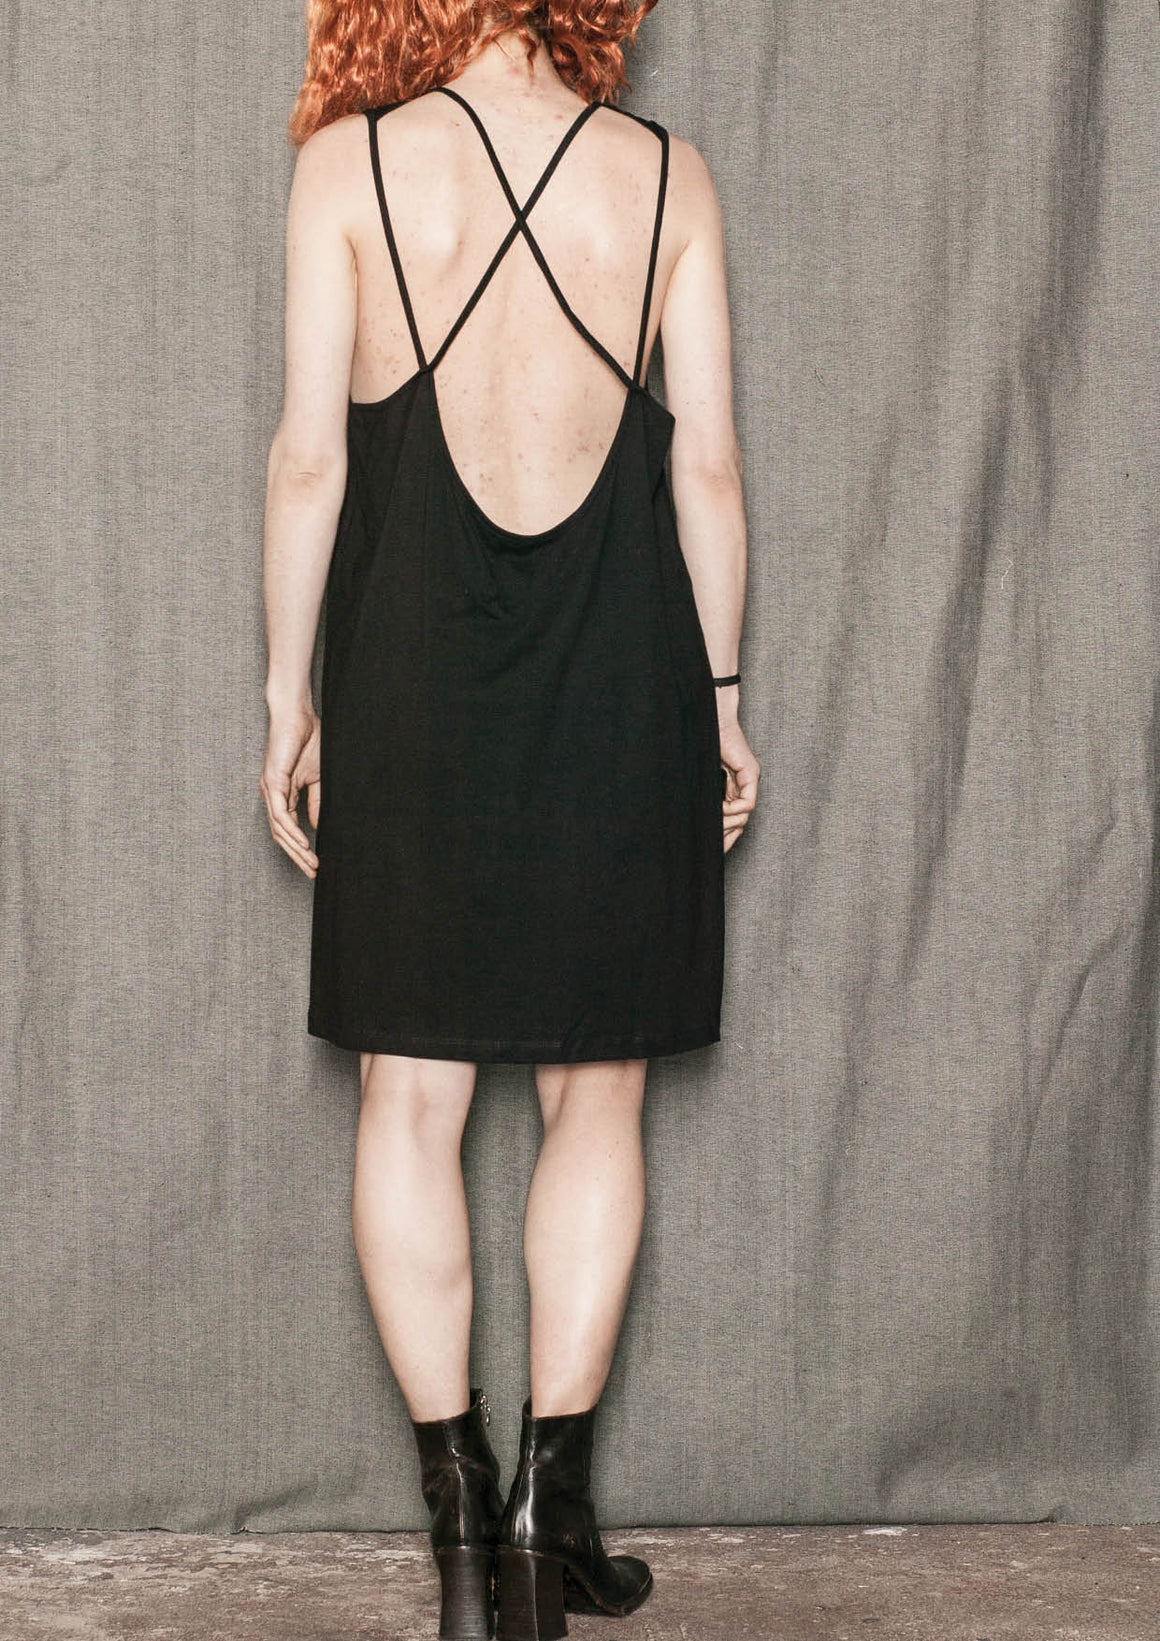 DRESS SPAGHETTI STRAPS - JERSEY black